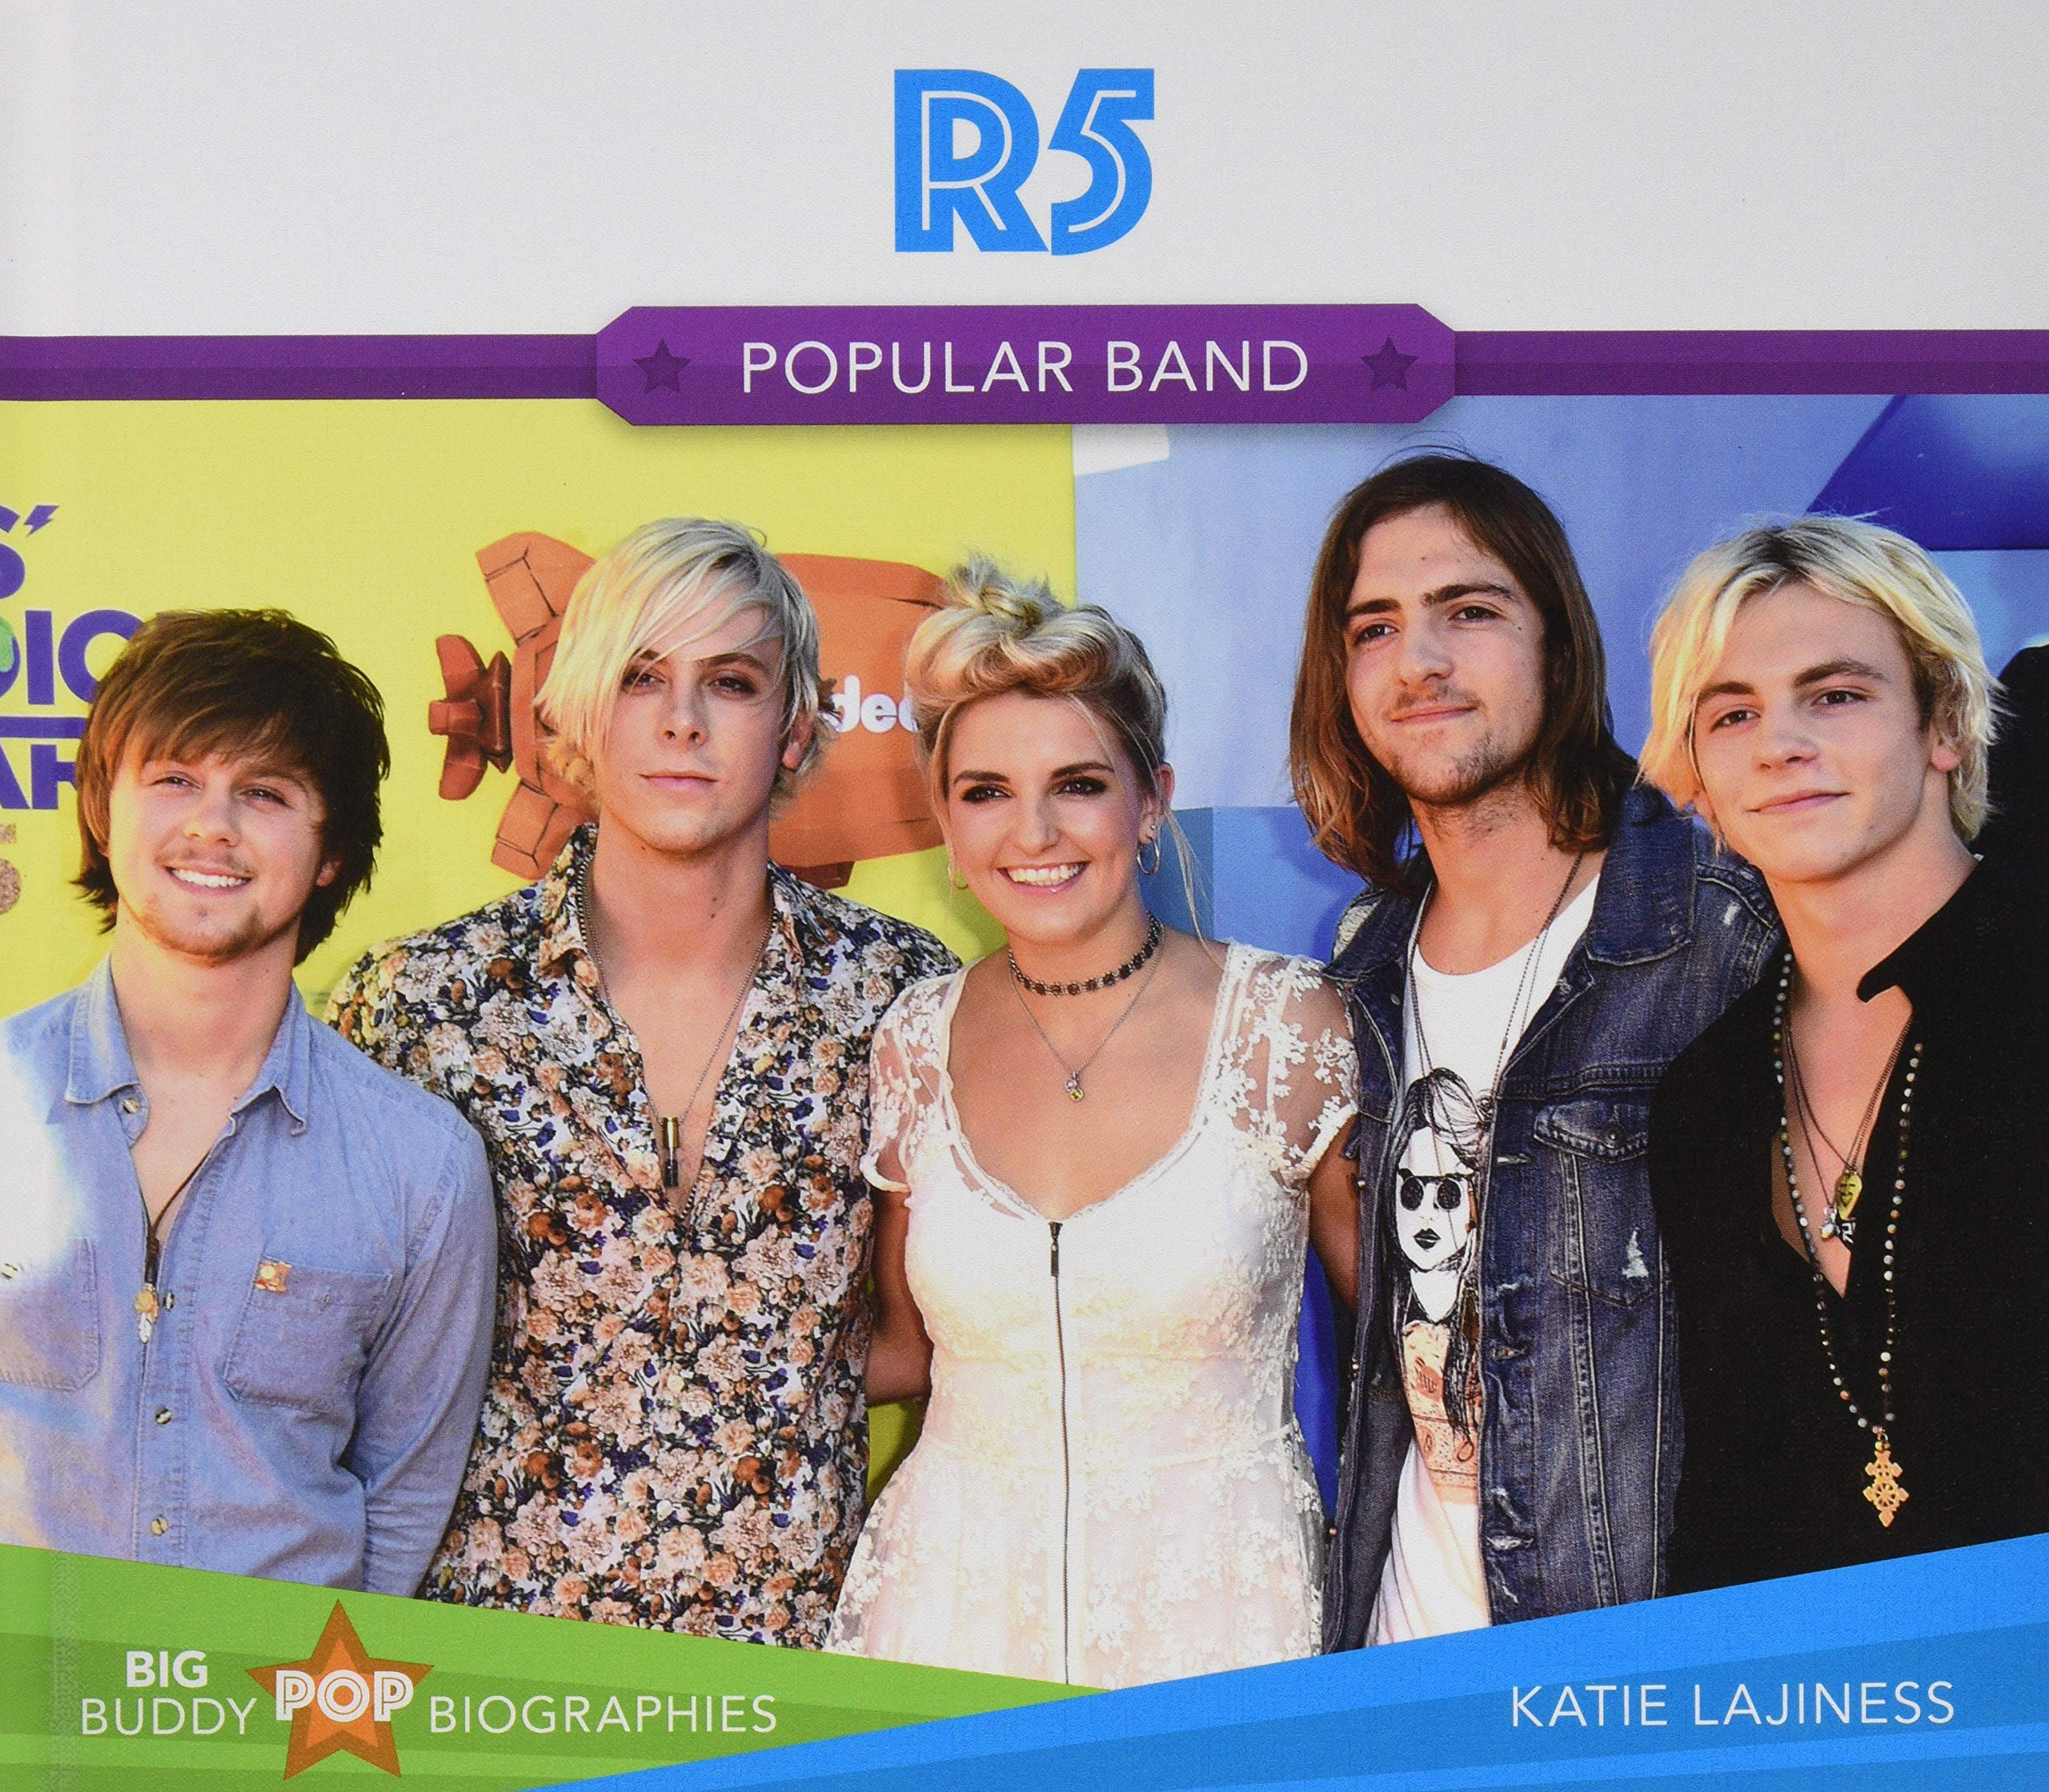 R5: Popular Band (Big Buddy Pop Biographies)